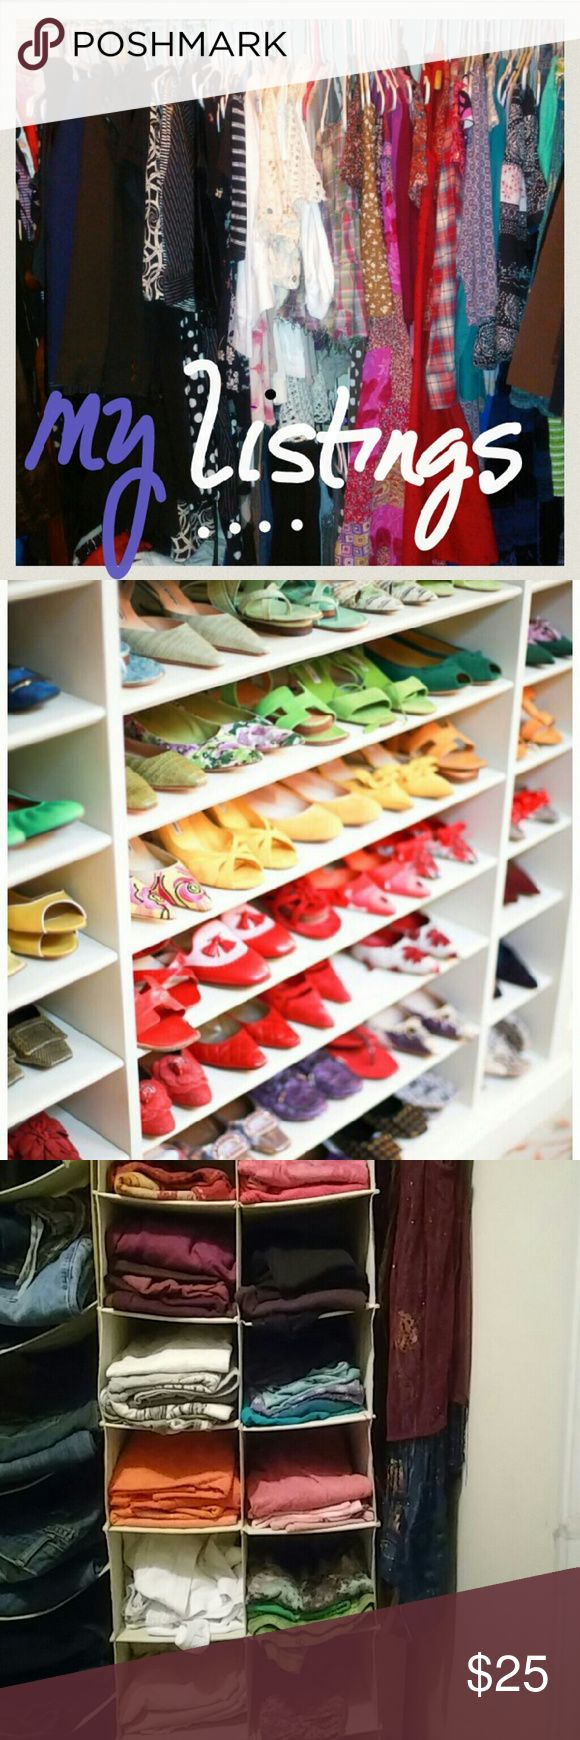 Closet by Color.. I have over 375 listings ..With the exception of newer listings, intimate apparel, bathing suits, accessories and jewelry you'll find my closet set up by color/shade.. Each section starts with a description of 'color psychology', a fun way to explore.. Welcome to my Color Coordinated Closet :) Colourpop Accessories